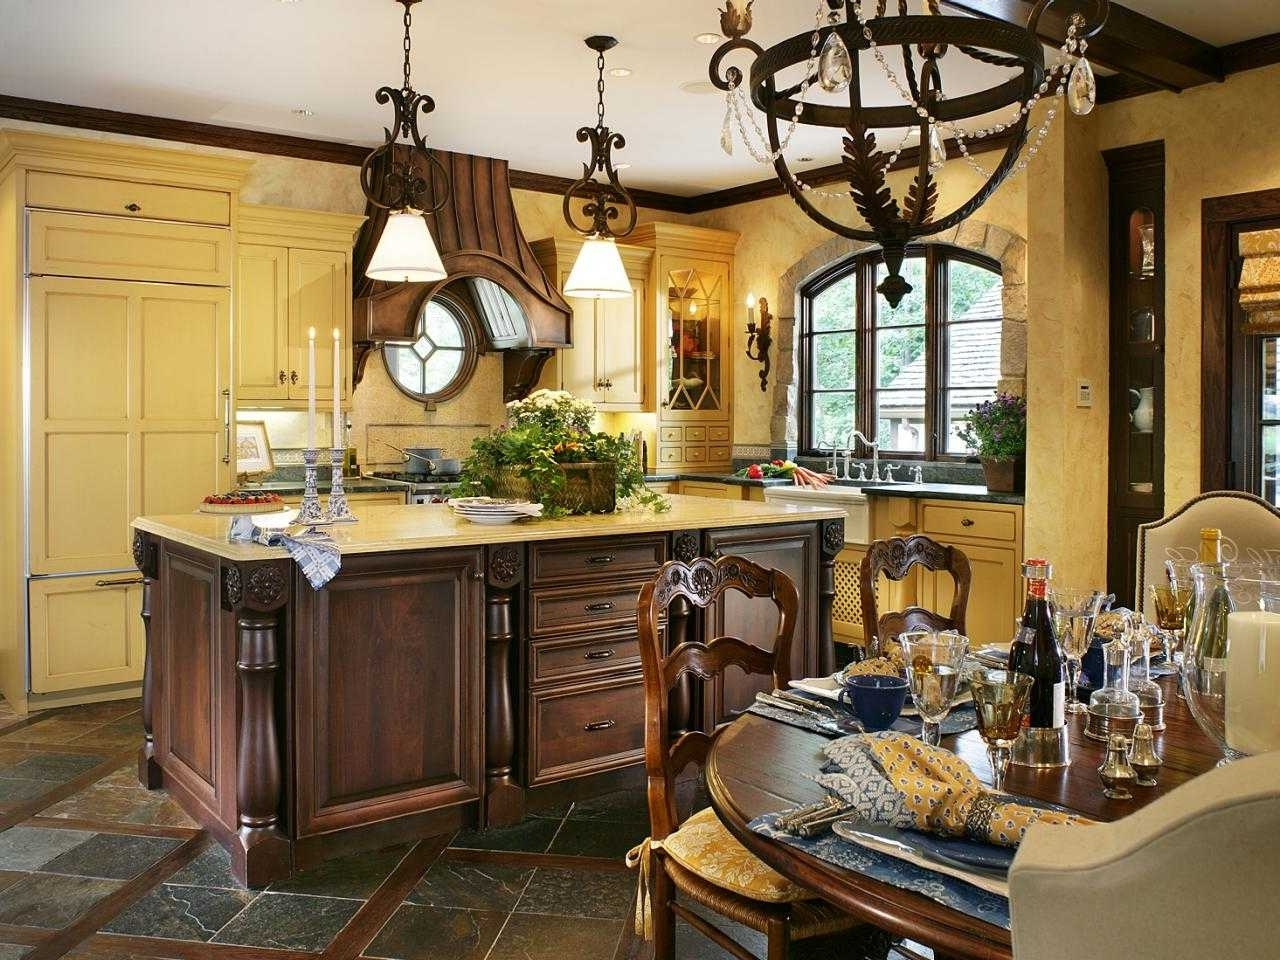 French Country Chandeliers For Kitchen Pertaining To Current French Country Lighting Fixtures Kitchen Pictures Design Amazing (View 11 of 20)